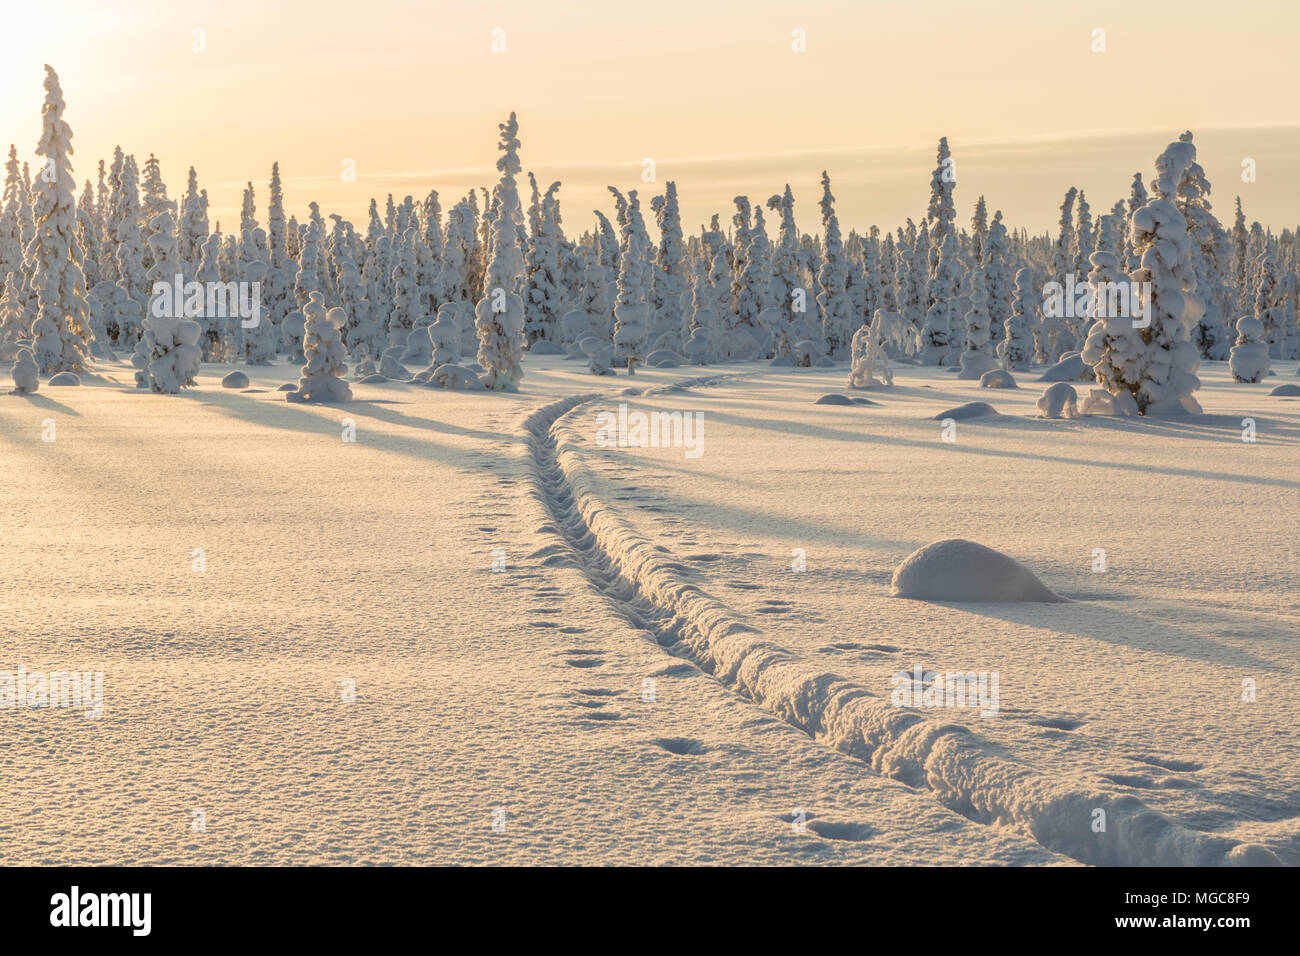 Winter landscape with reindeer tracks in the snow, clear skye and nice warm light, Gällivare county, Swedish Lapland, Sweden - Stock Image